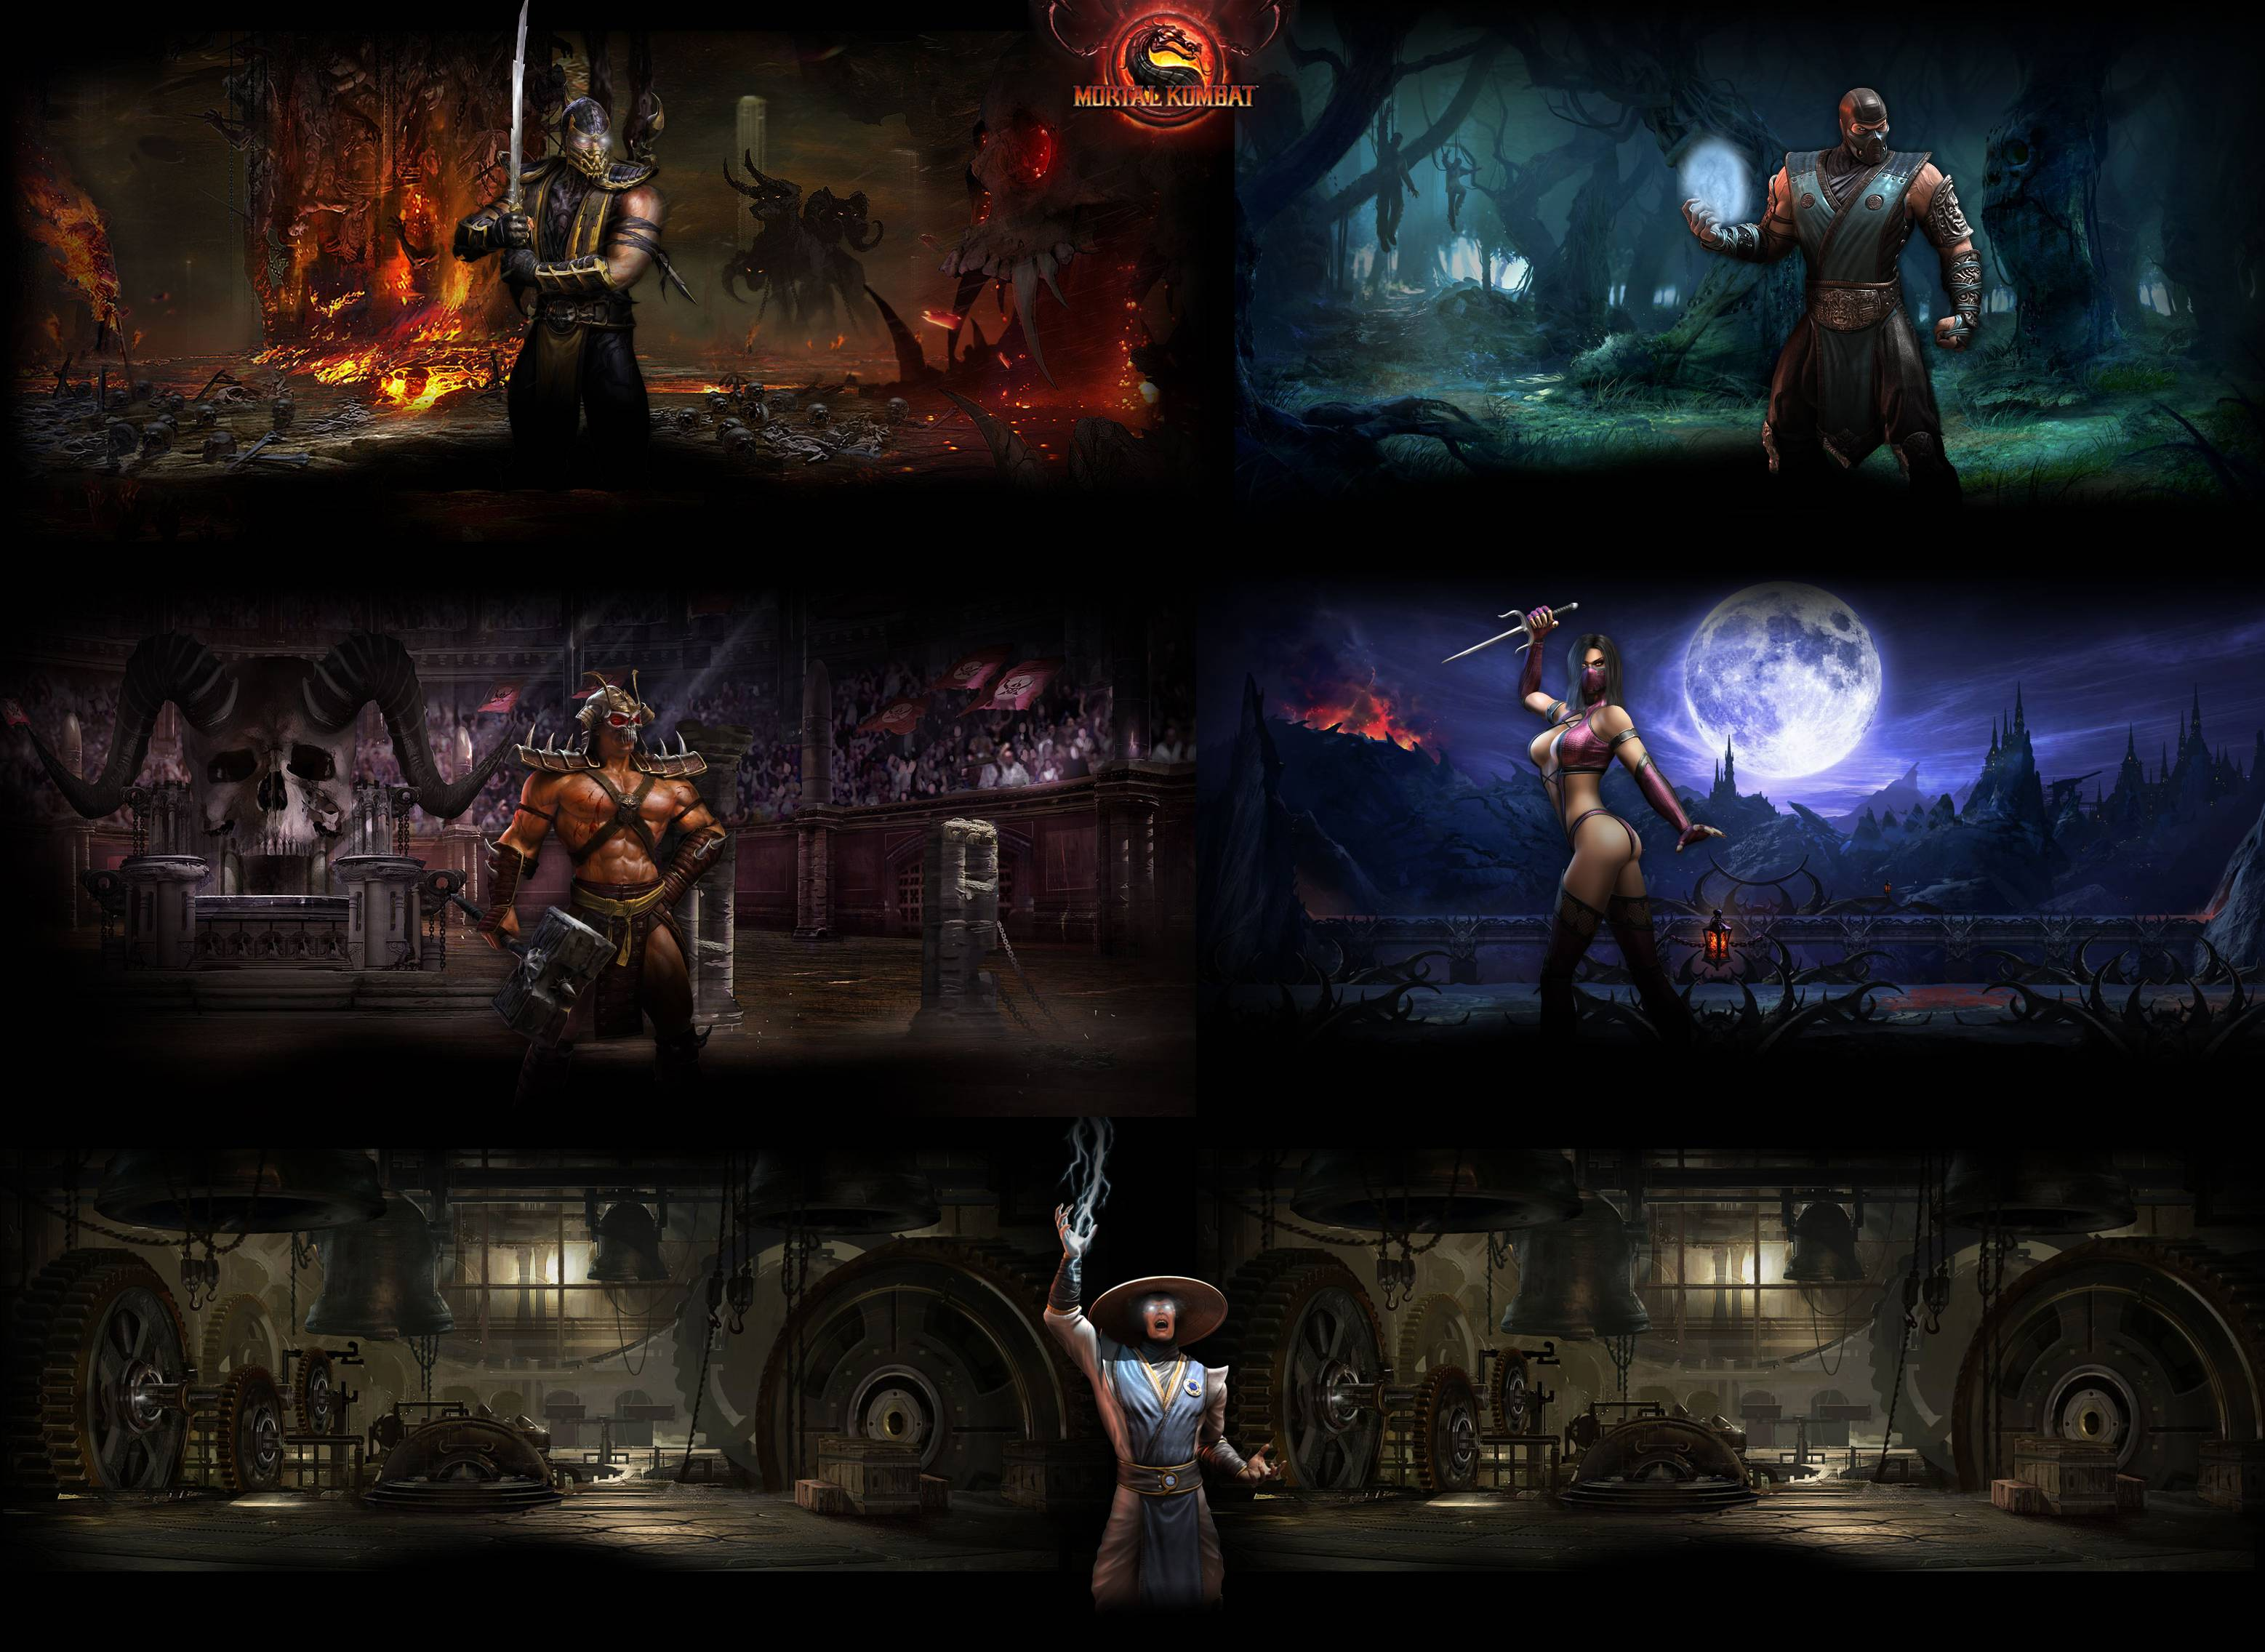 Mortal Kombat 9 Wallpapers 2 by father12345